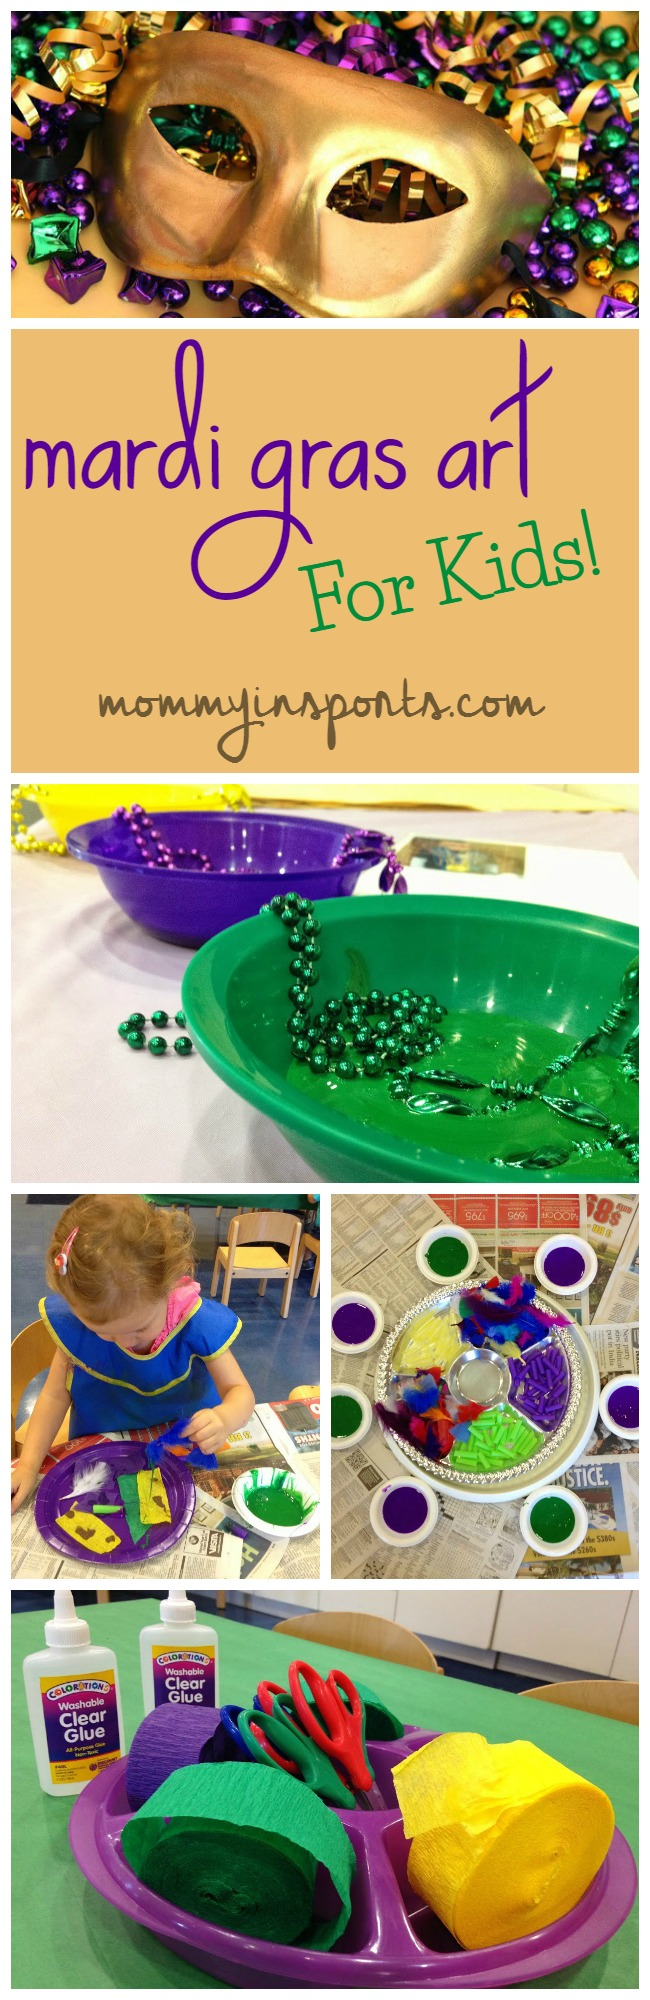 Mardi Gras Art for Kids